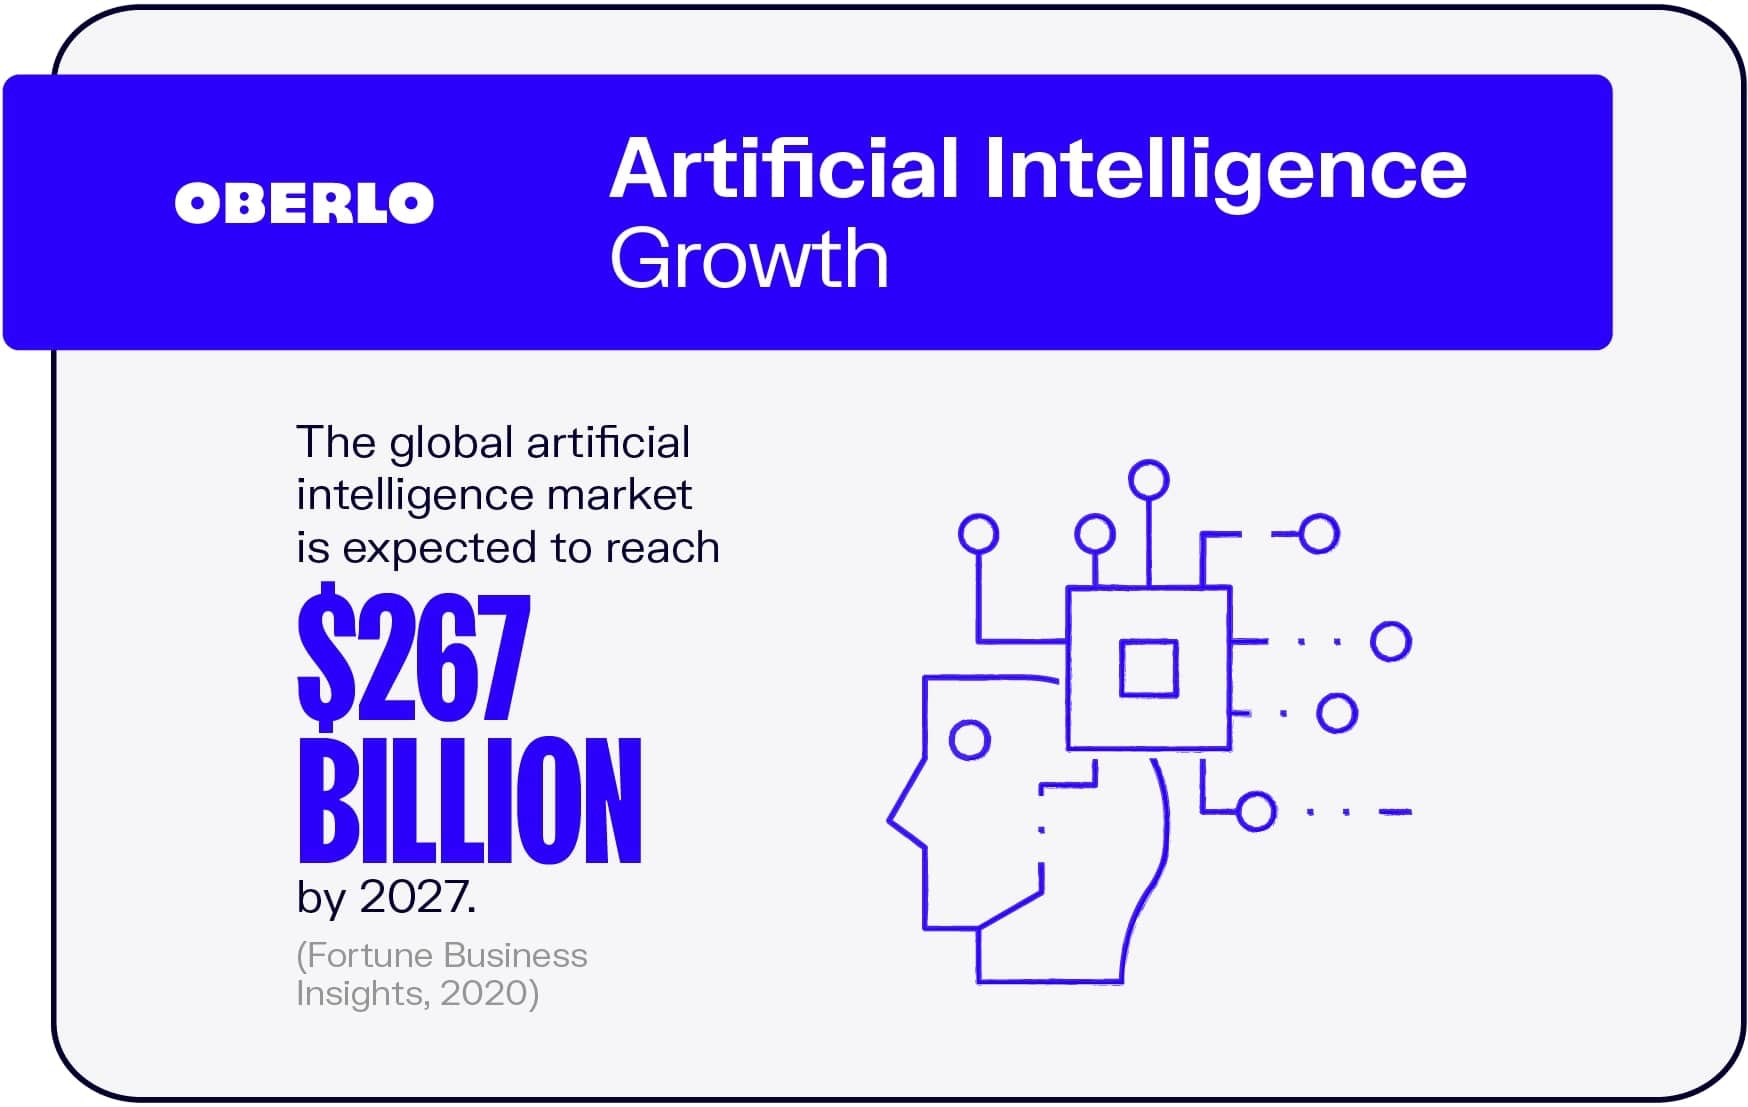 A simple infographic showing the global AI market is expected to reach $267 billion by 2027.